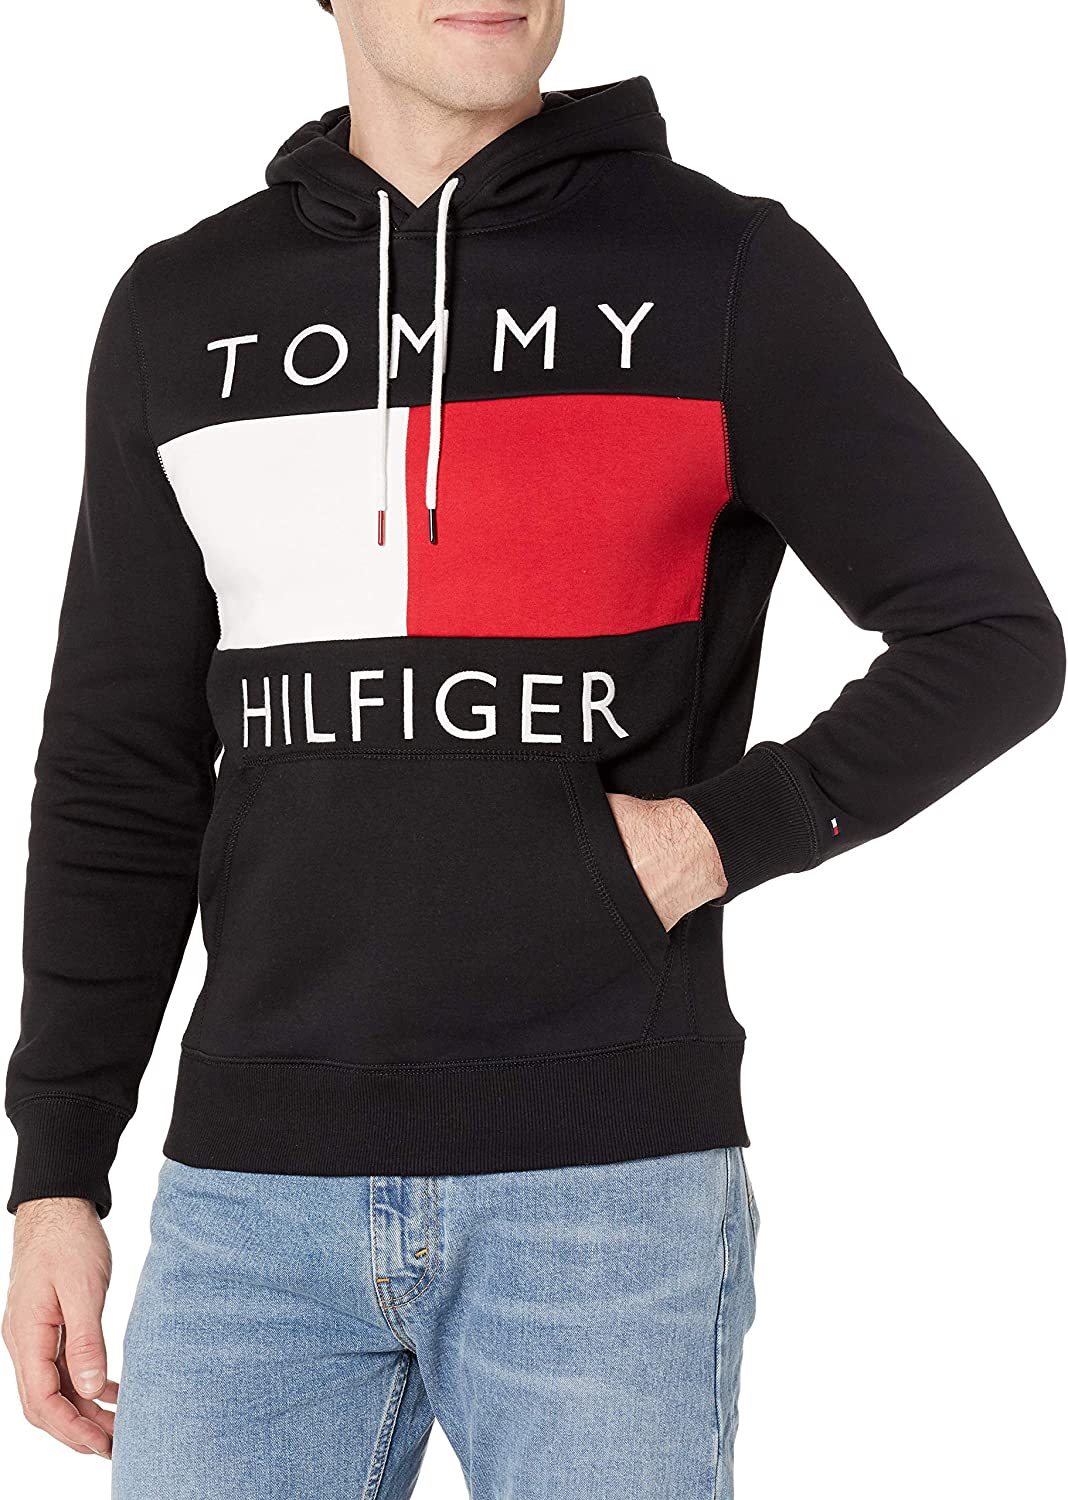 Tommy Hilfiger Men's Sale All stores are sold item Hoodie Sweatshirt